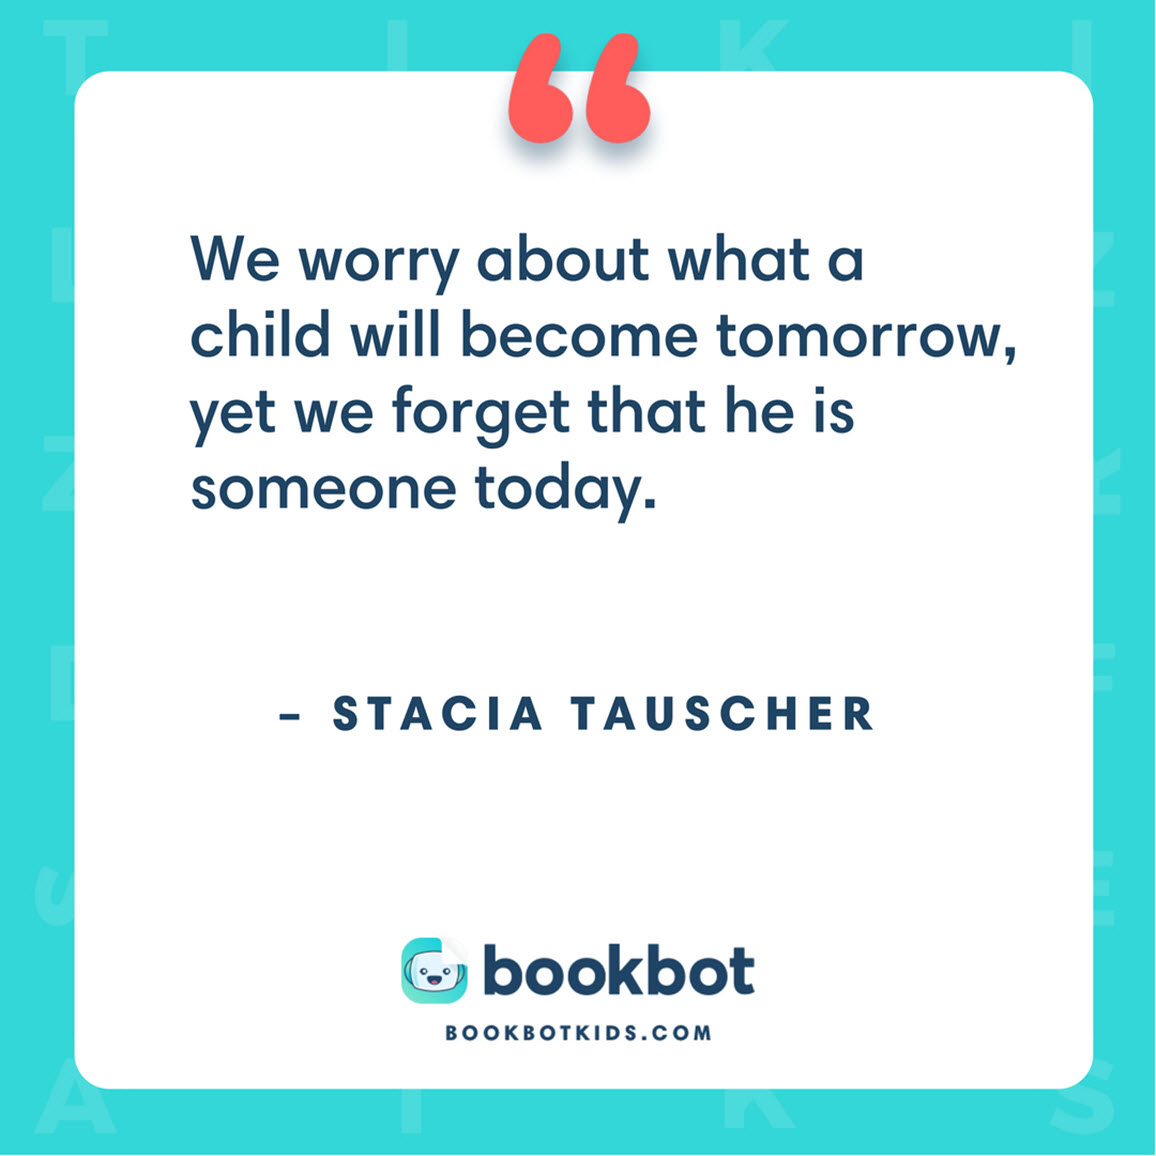 We worry about what a child will become tomorrow, yet we forget that he is someone today. – Stacia Tauscher